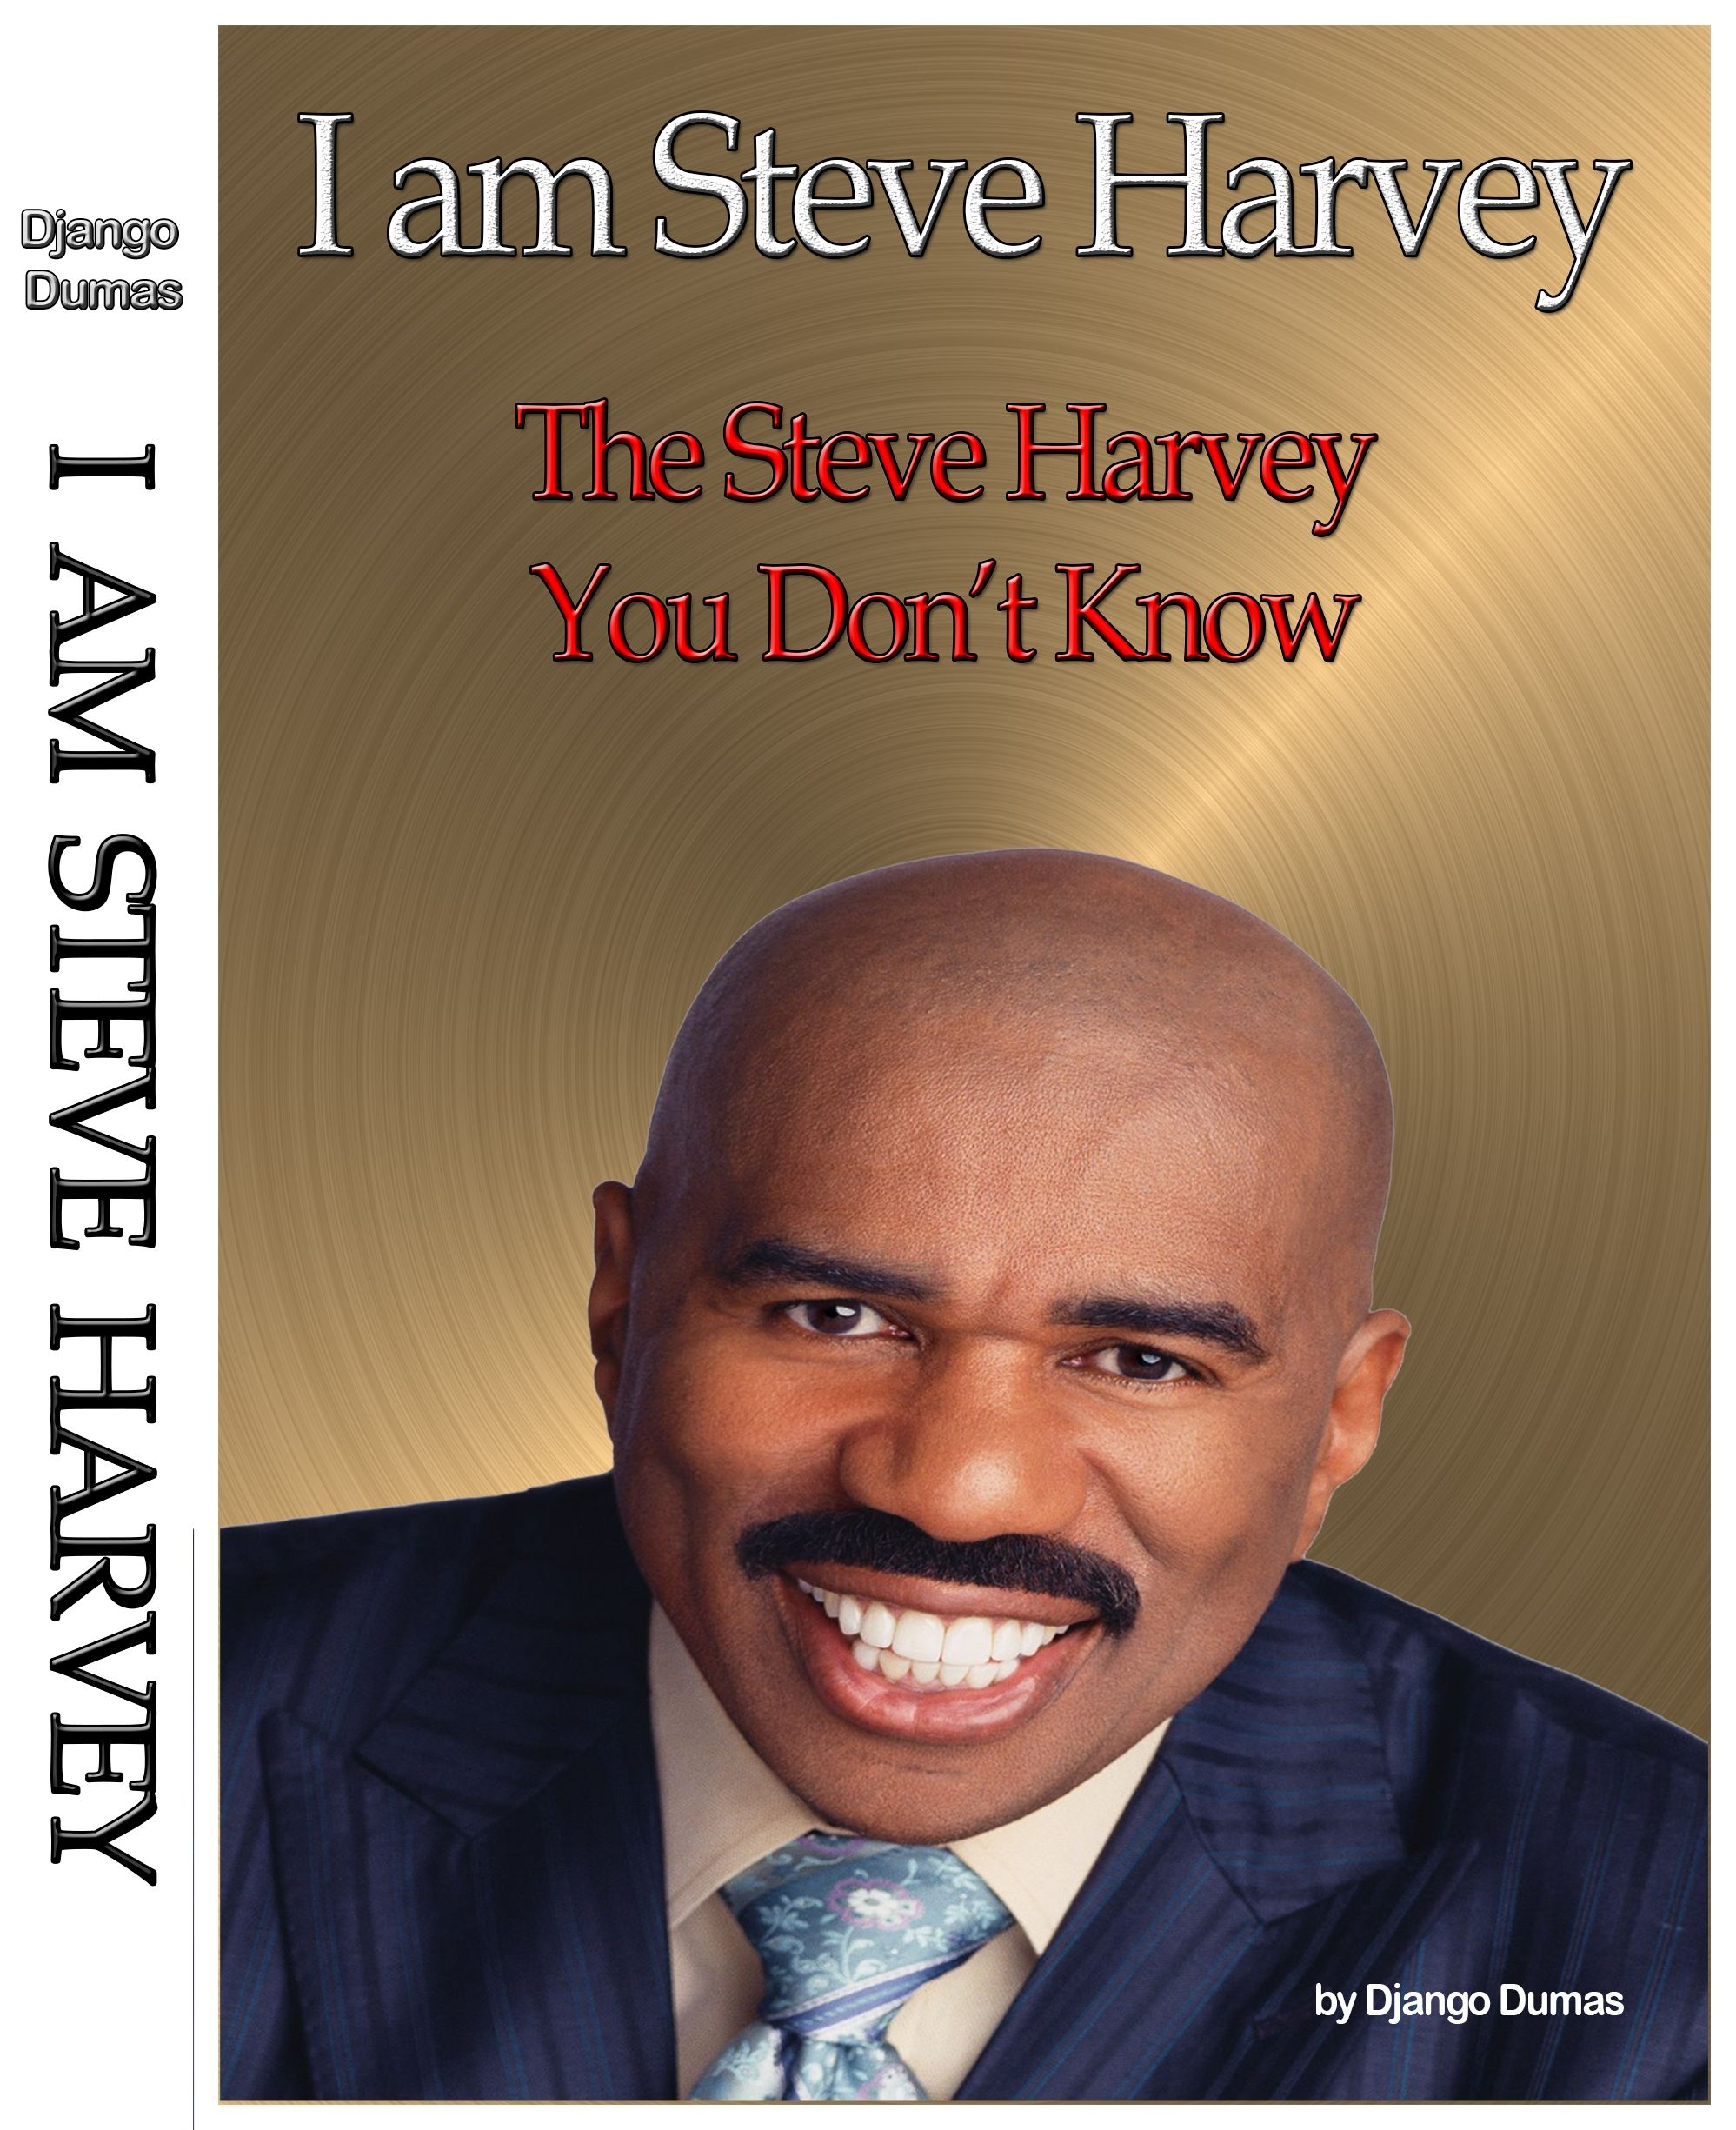 The New Steve Harvey Book He Doesn T Want You To Read